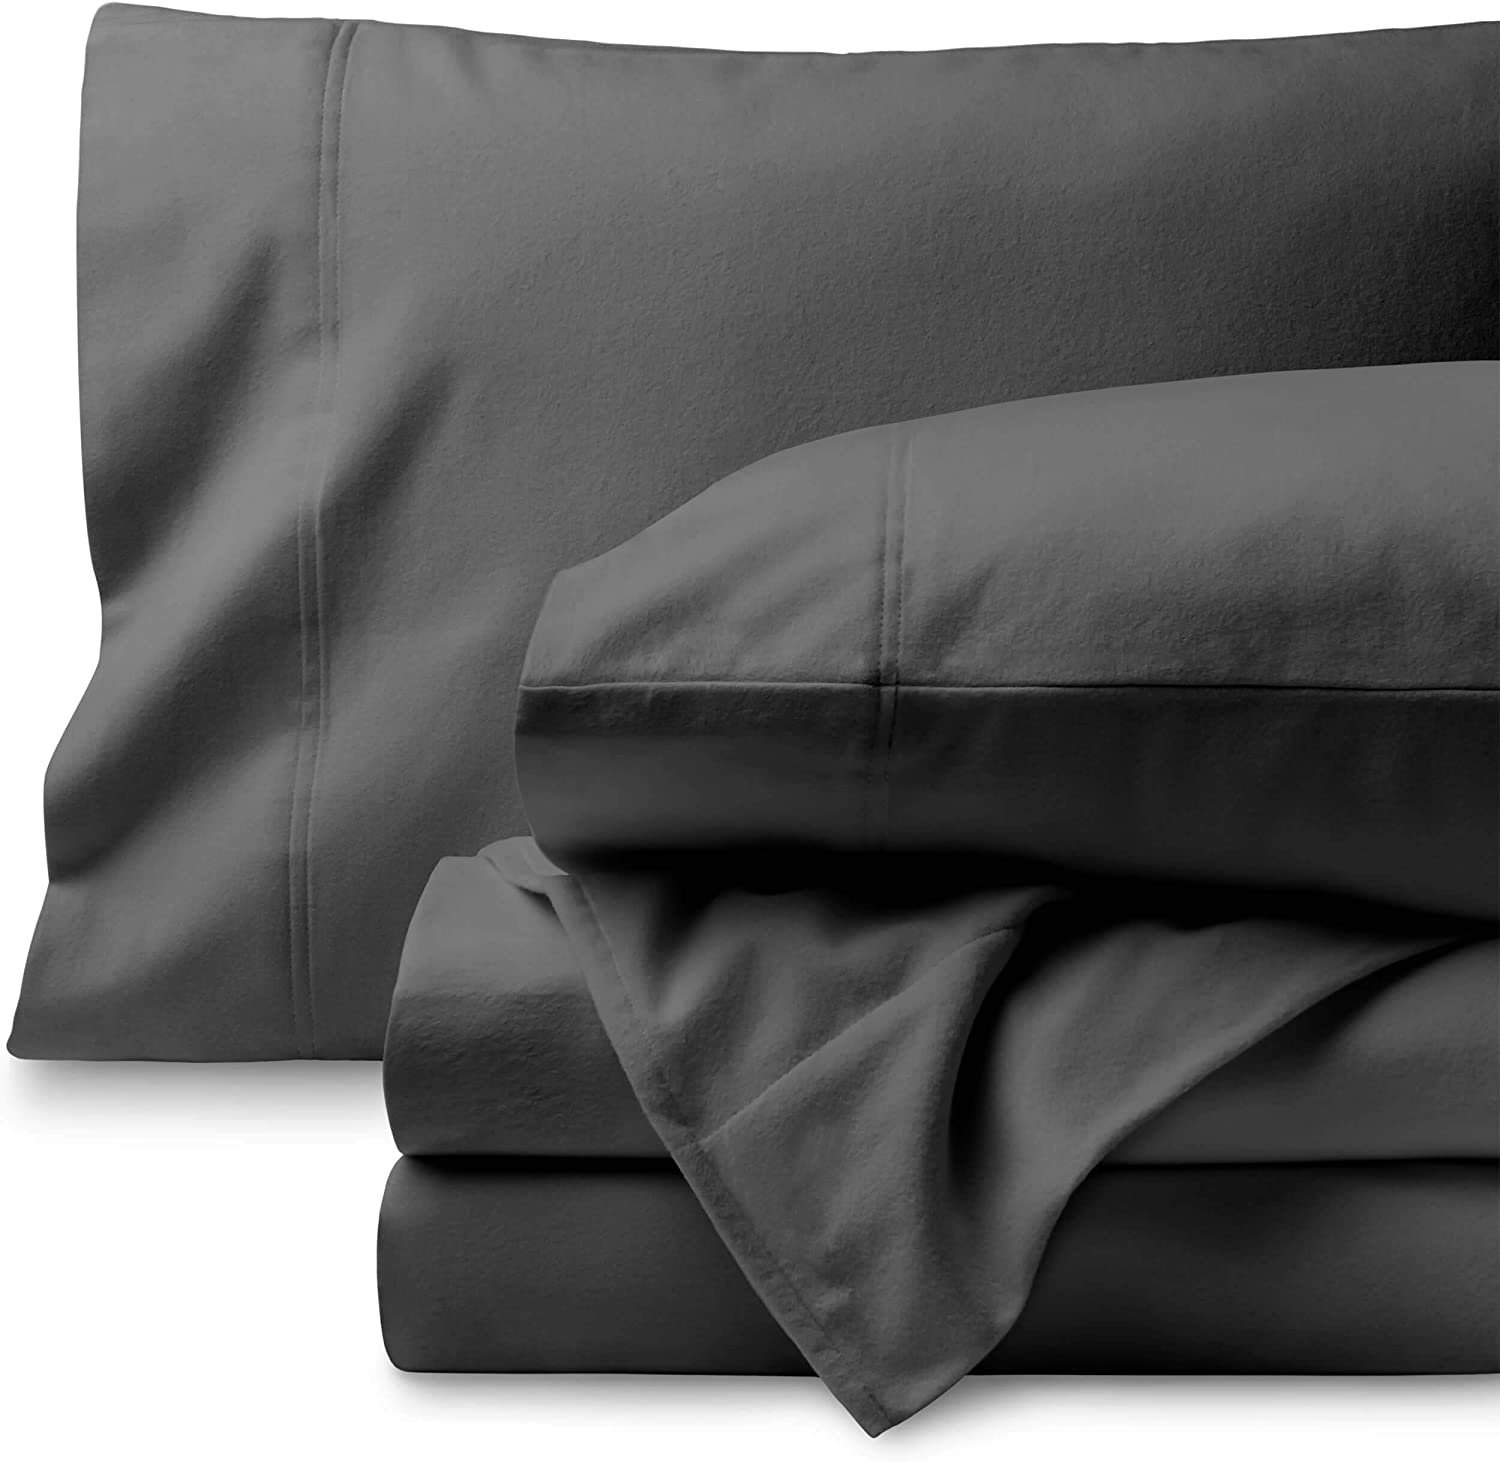 Bare Home Flannel Sheet Set 100% Cotton, Velvety Soft Heavyweight - Double Brushed Flannel - Deep Pocket (Twin, Grey)